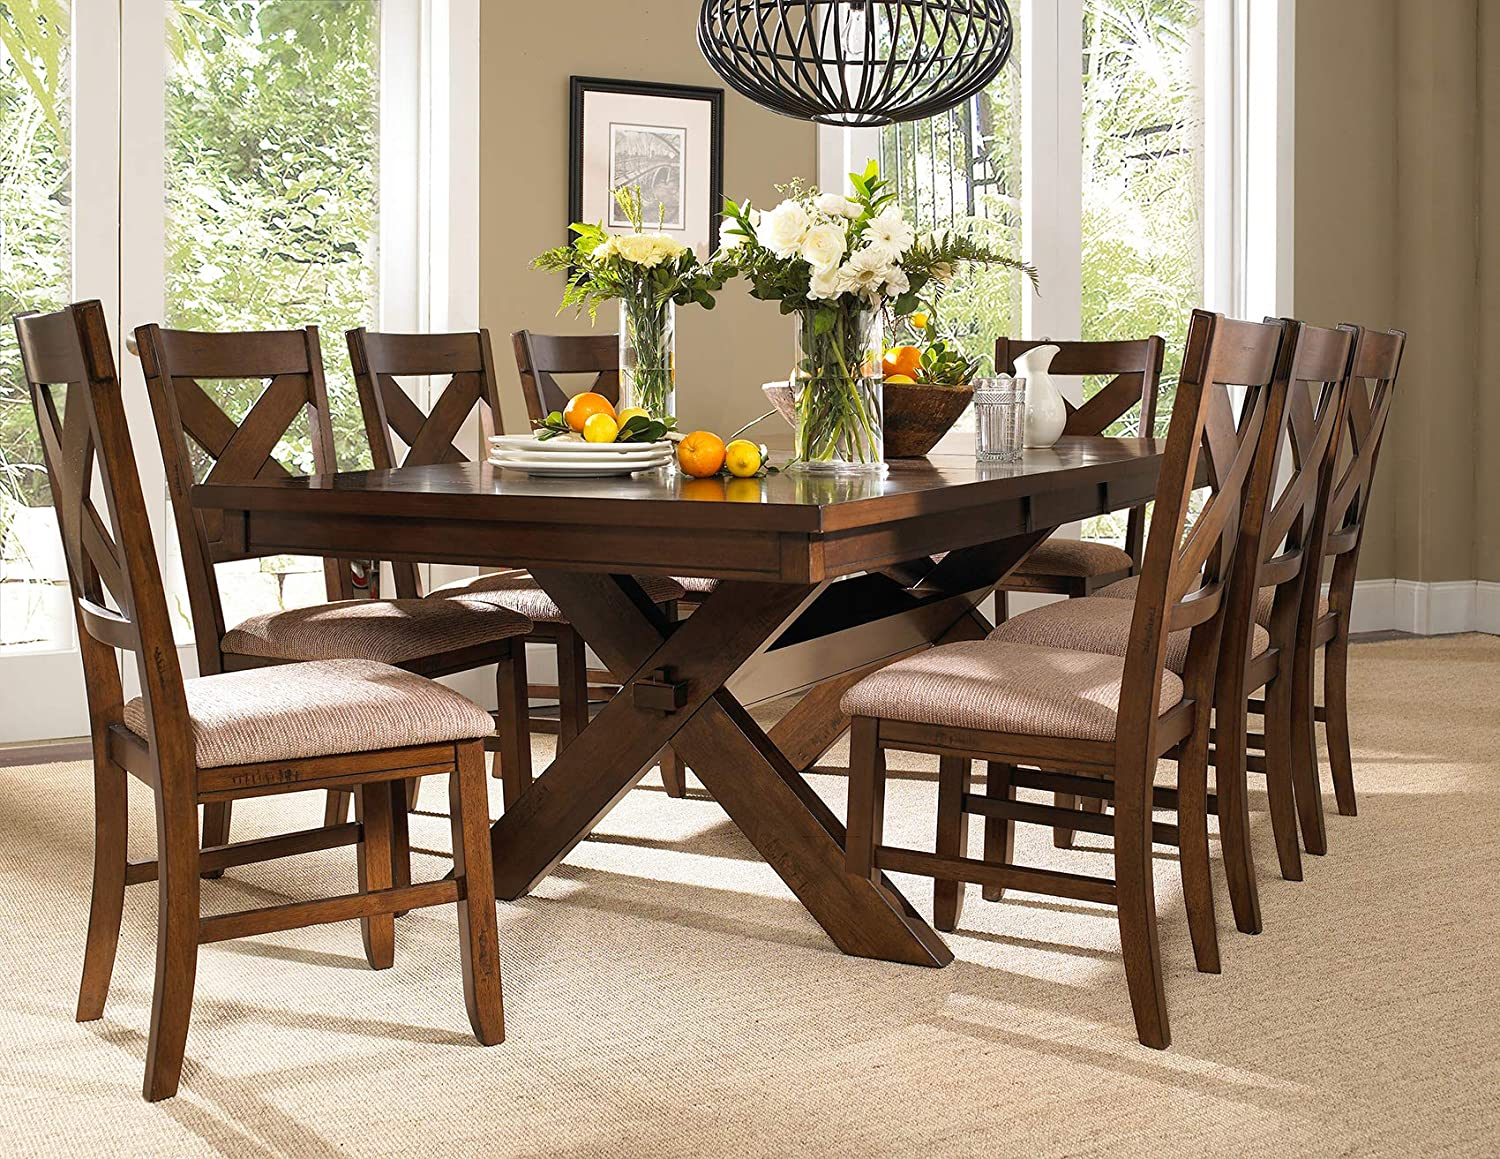 Top 13 Best Dining Set for Home 11